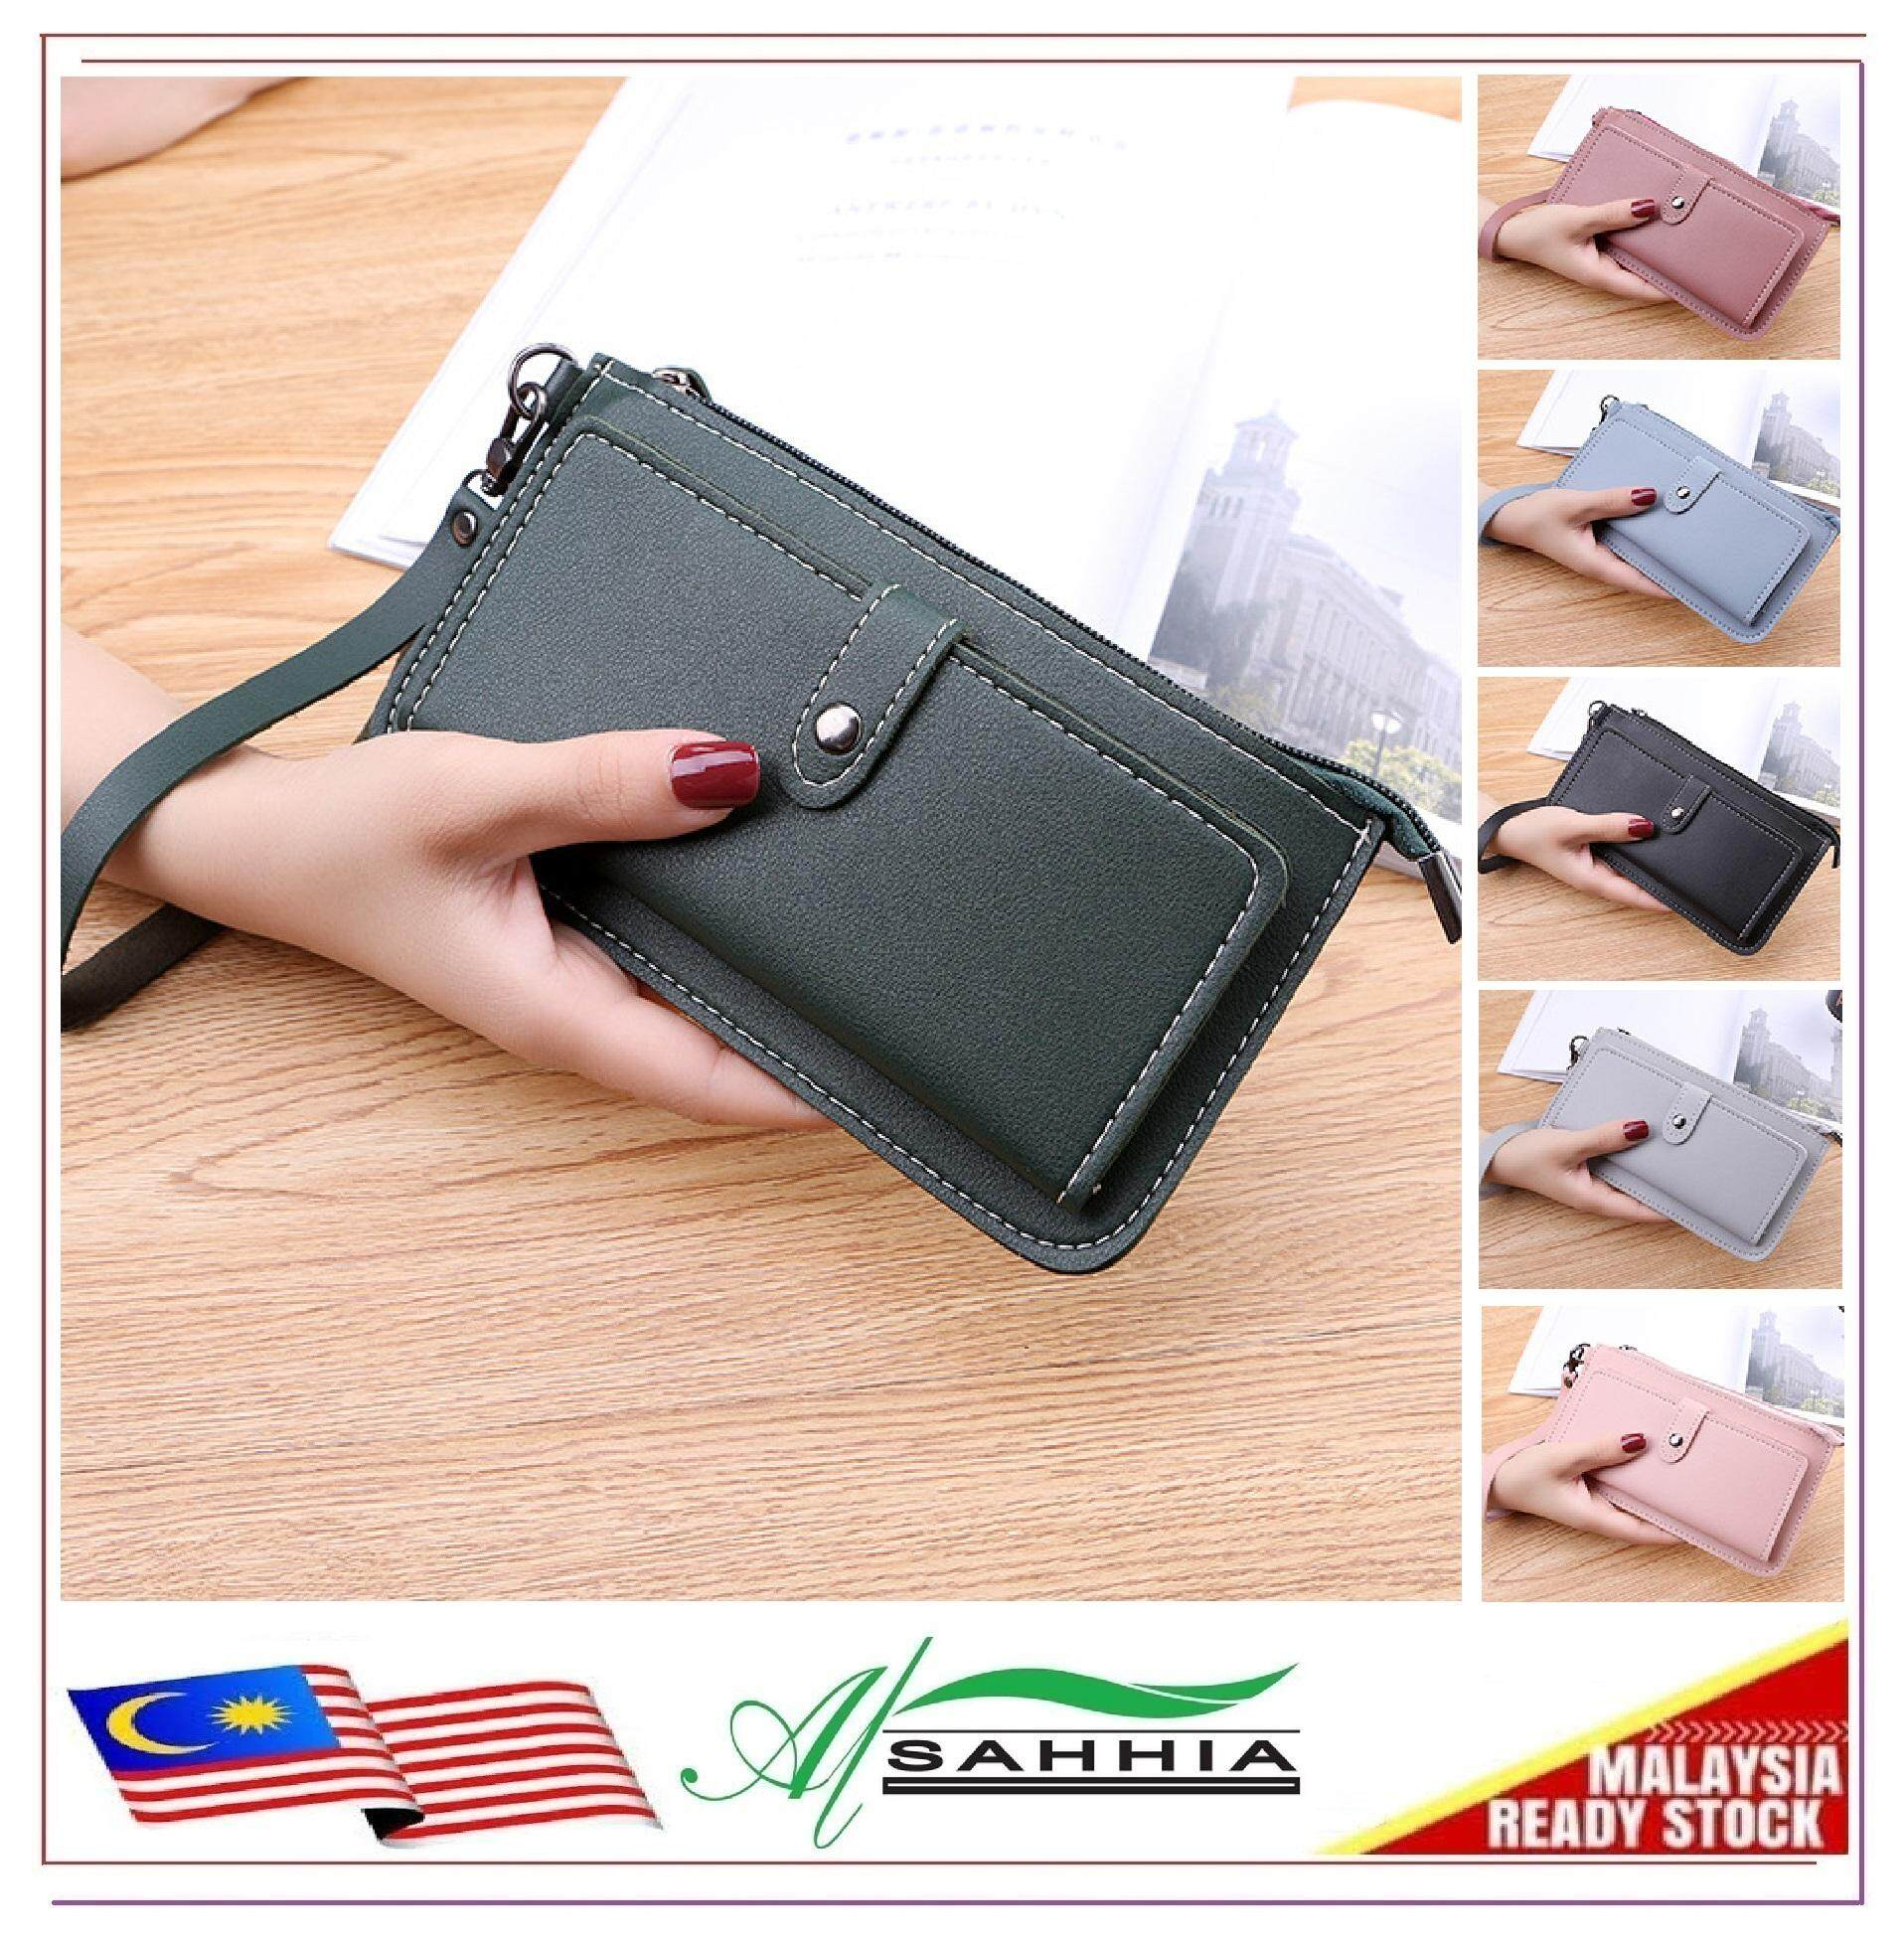 dbc5dfa1f9 15P2 Al Sahhia Korean Luxury Long Purse Lady Women's Multi-slot Zip Purse  Wallet